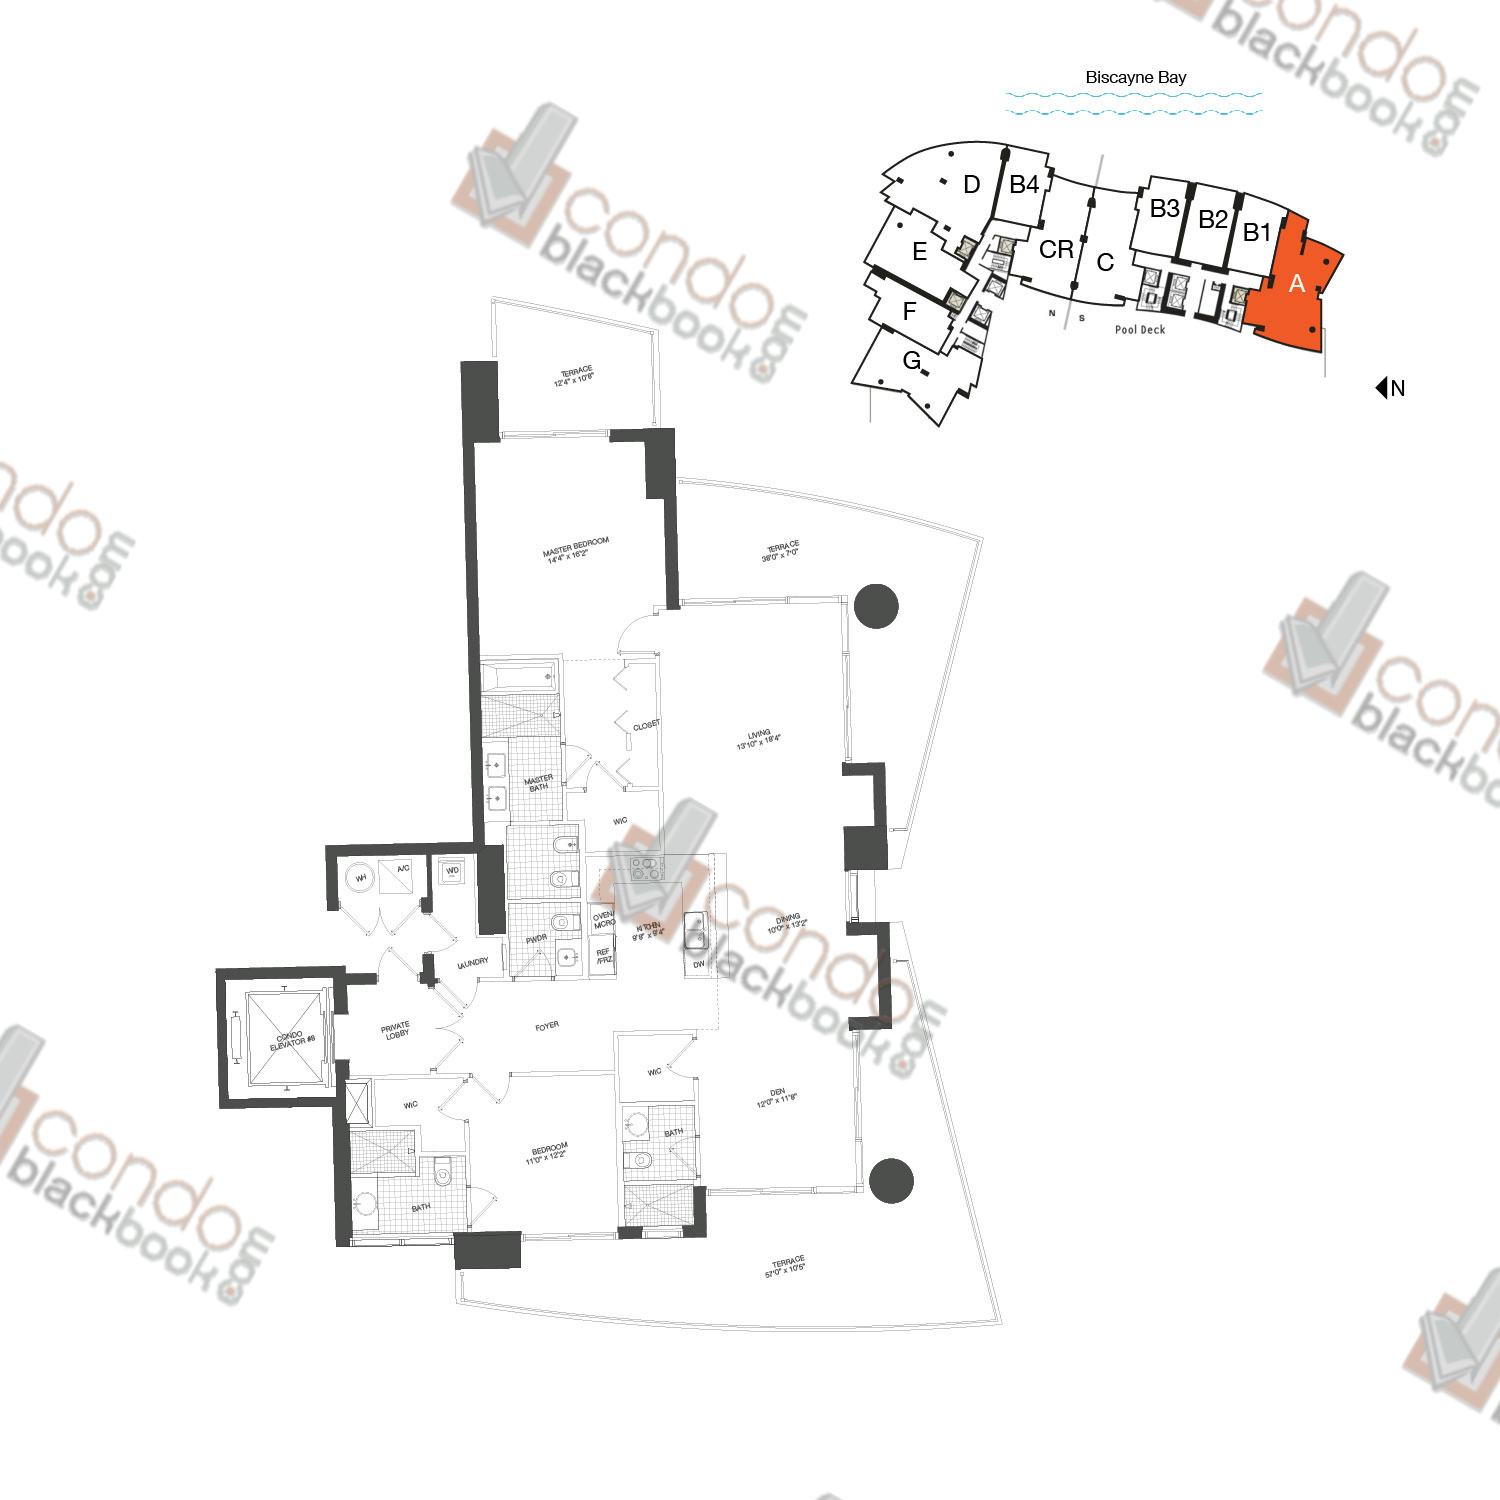 Floor plan for 900 Biscayne Bay Downtown Miami Miami, model Unit A, line 01, 2/3.5+DEN bedrooms, 1,694 sq ft